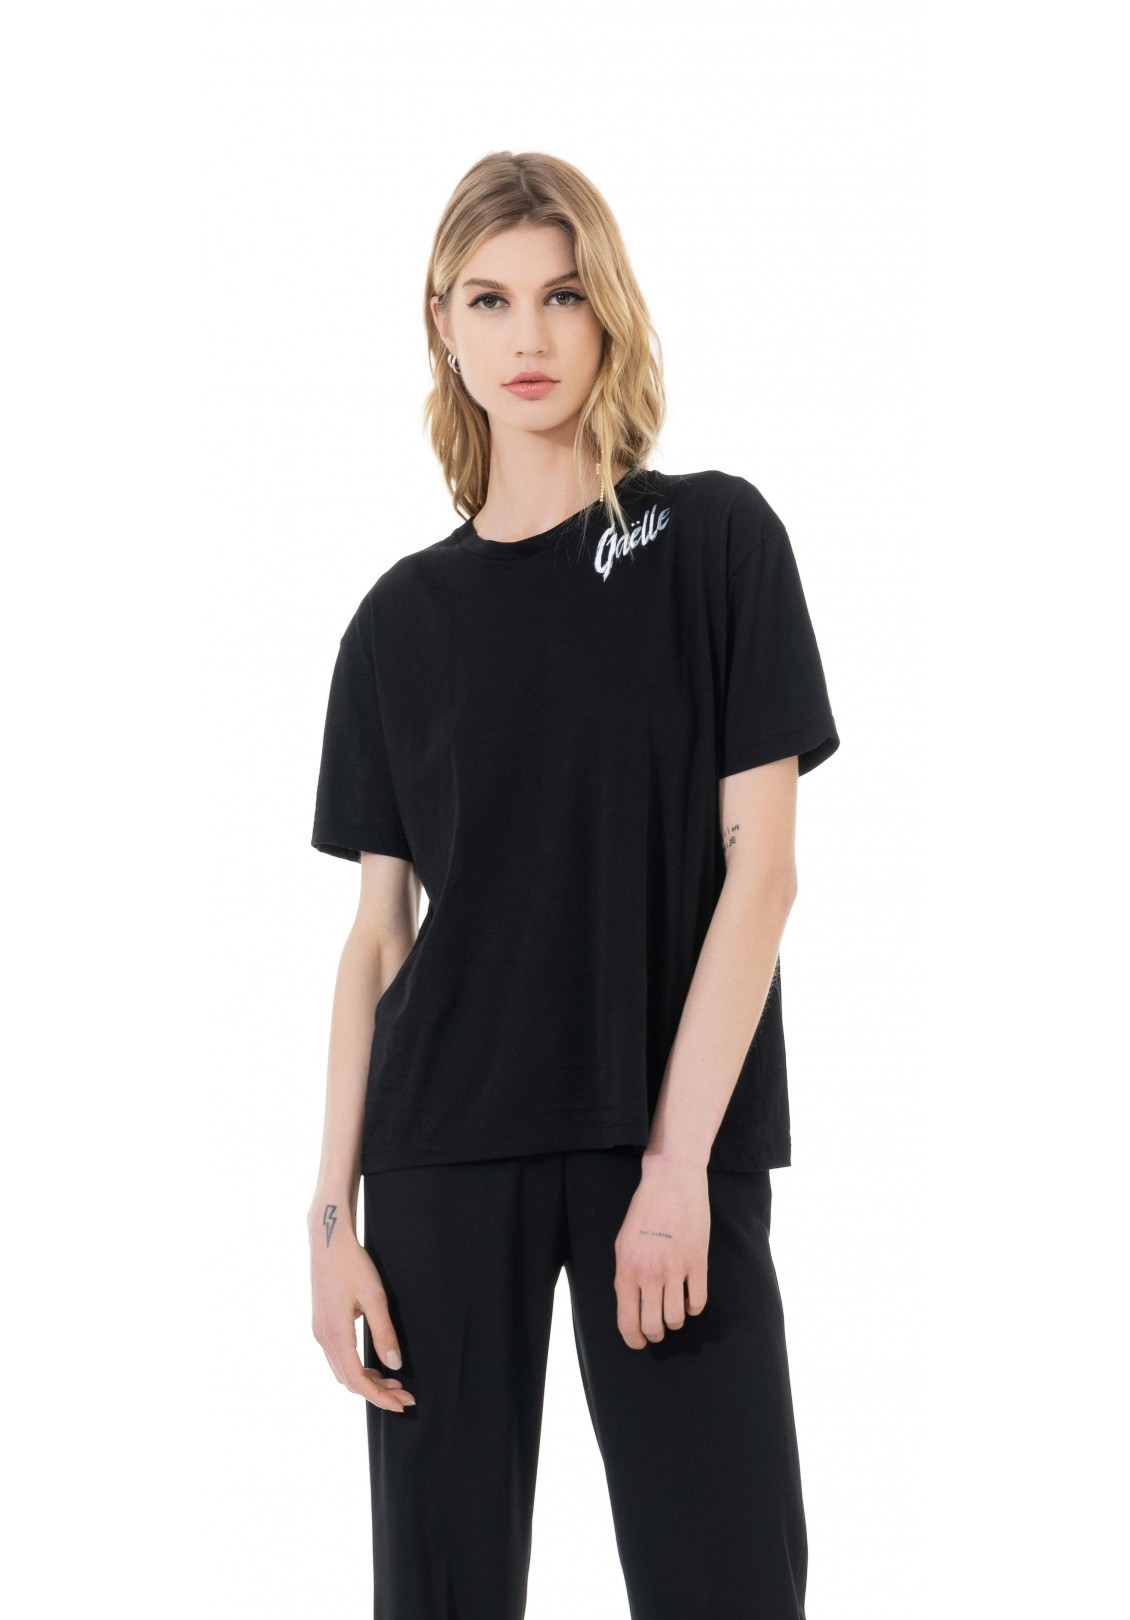 T-SHIRT - GBD4726 - GAELLE PARIS